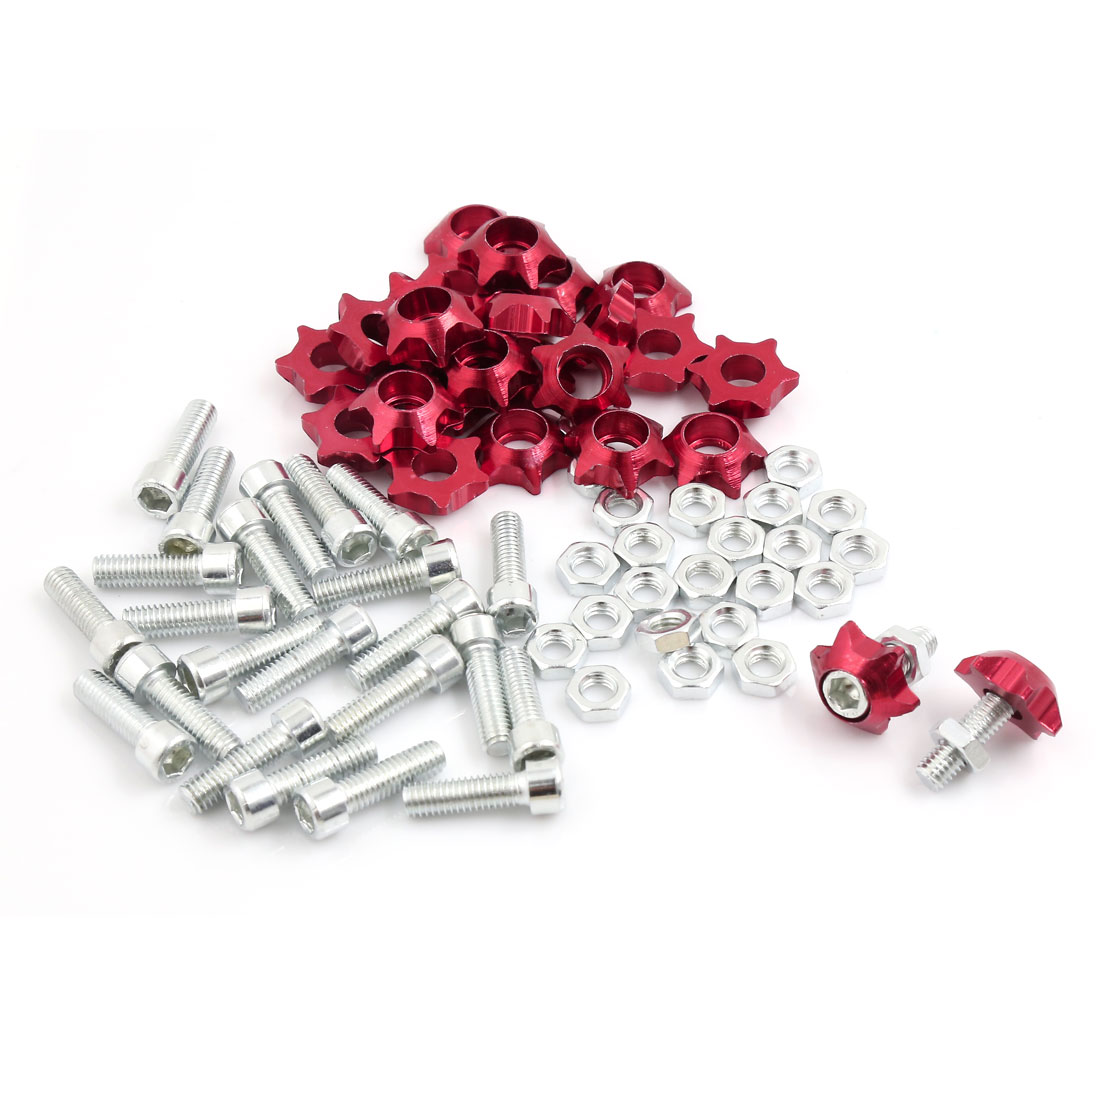 25 Pcs 6mm Thread Dia Star Shaped License Plate Frame Mounting Screws Red for Motorcycle Car